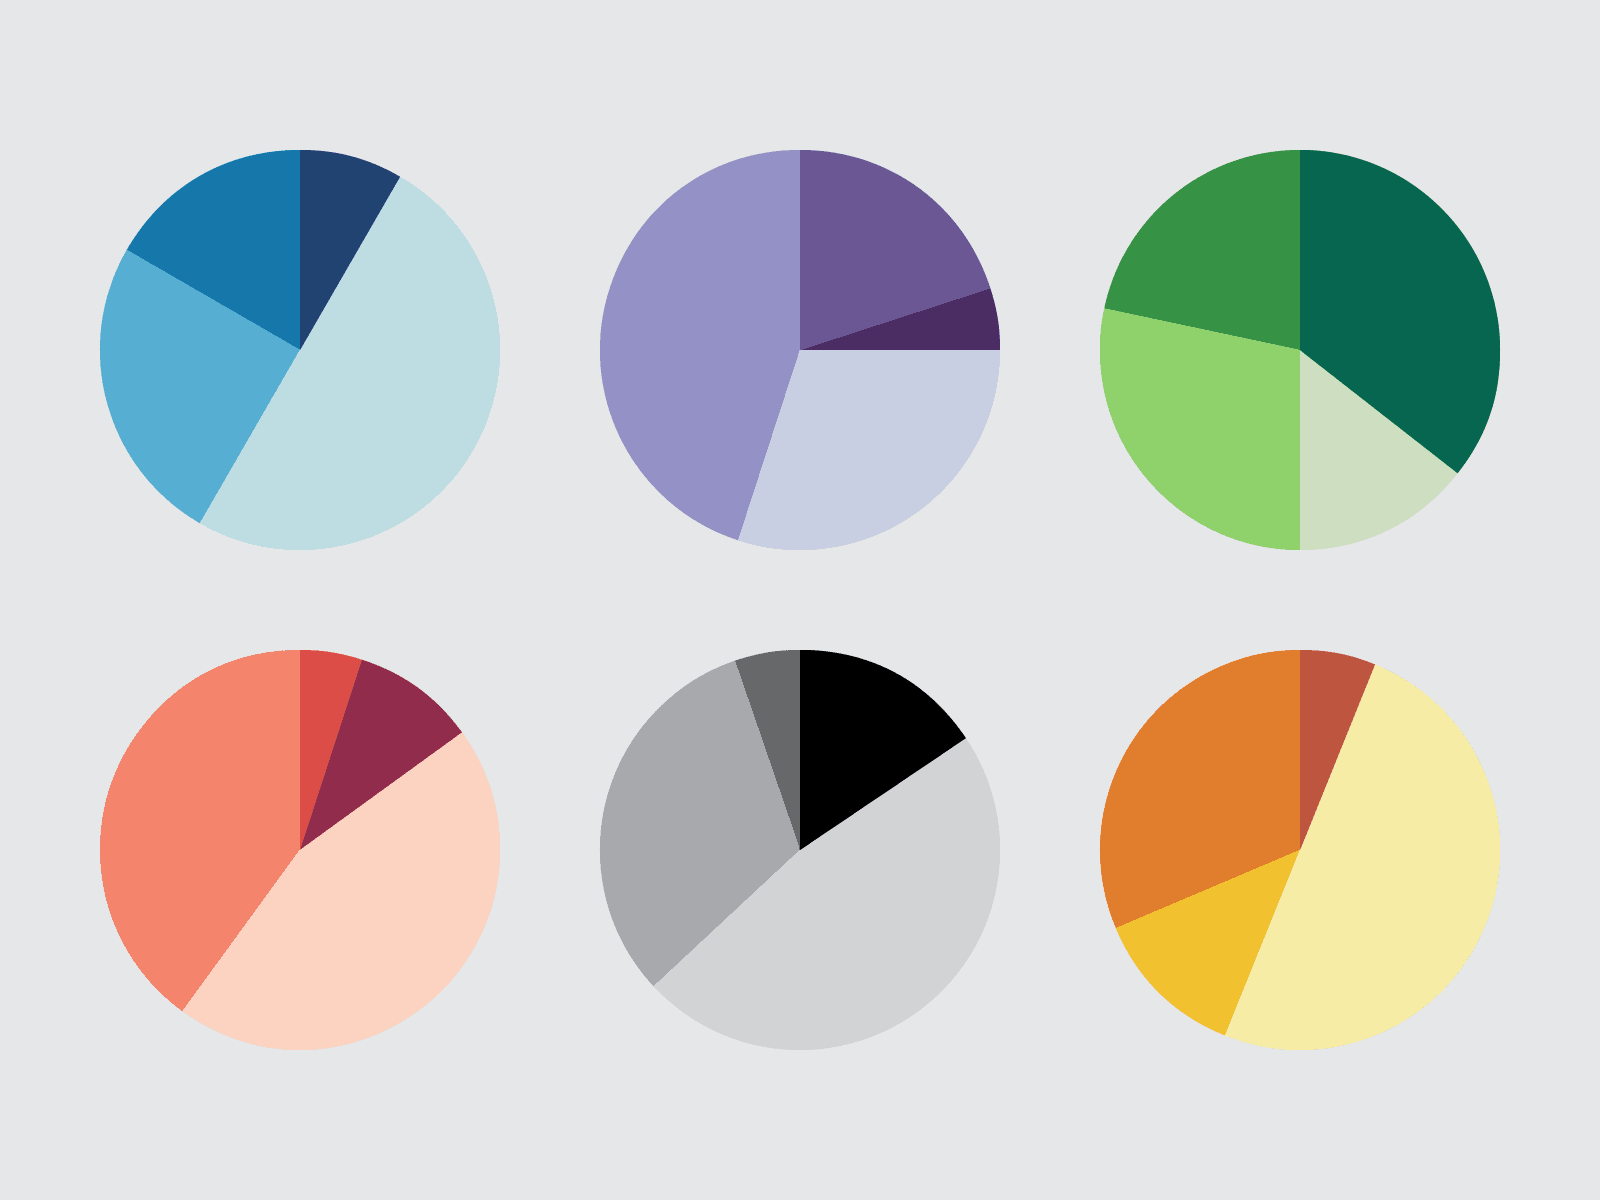 Pie charts representing diversity in GBA+ data analysis